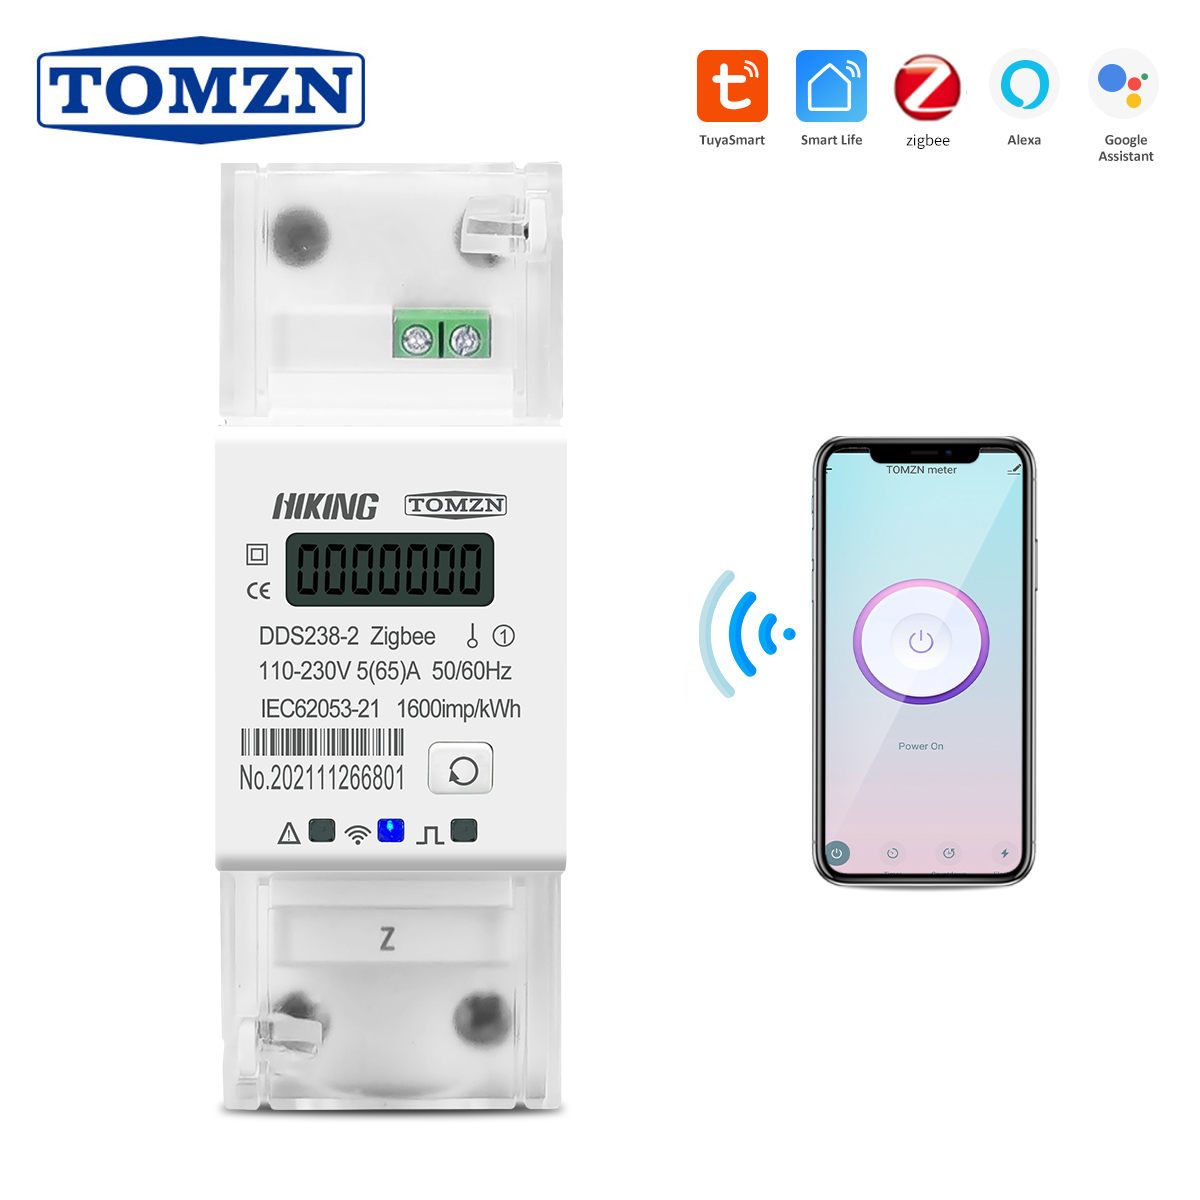 Zigbee Gateway Tuya Single Phase 65A Din Rail WIFI Smart Energy Meter timer Monitor kWh Meter Wattmeter 110V 220V 50/60Hz